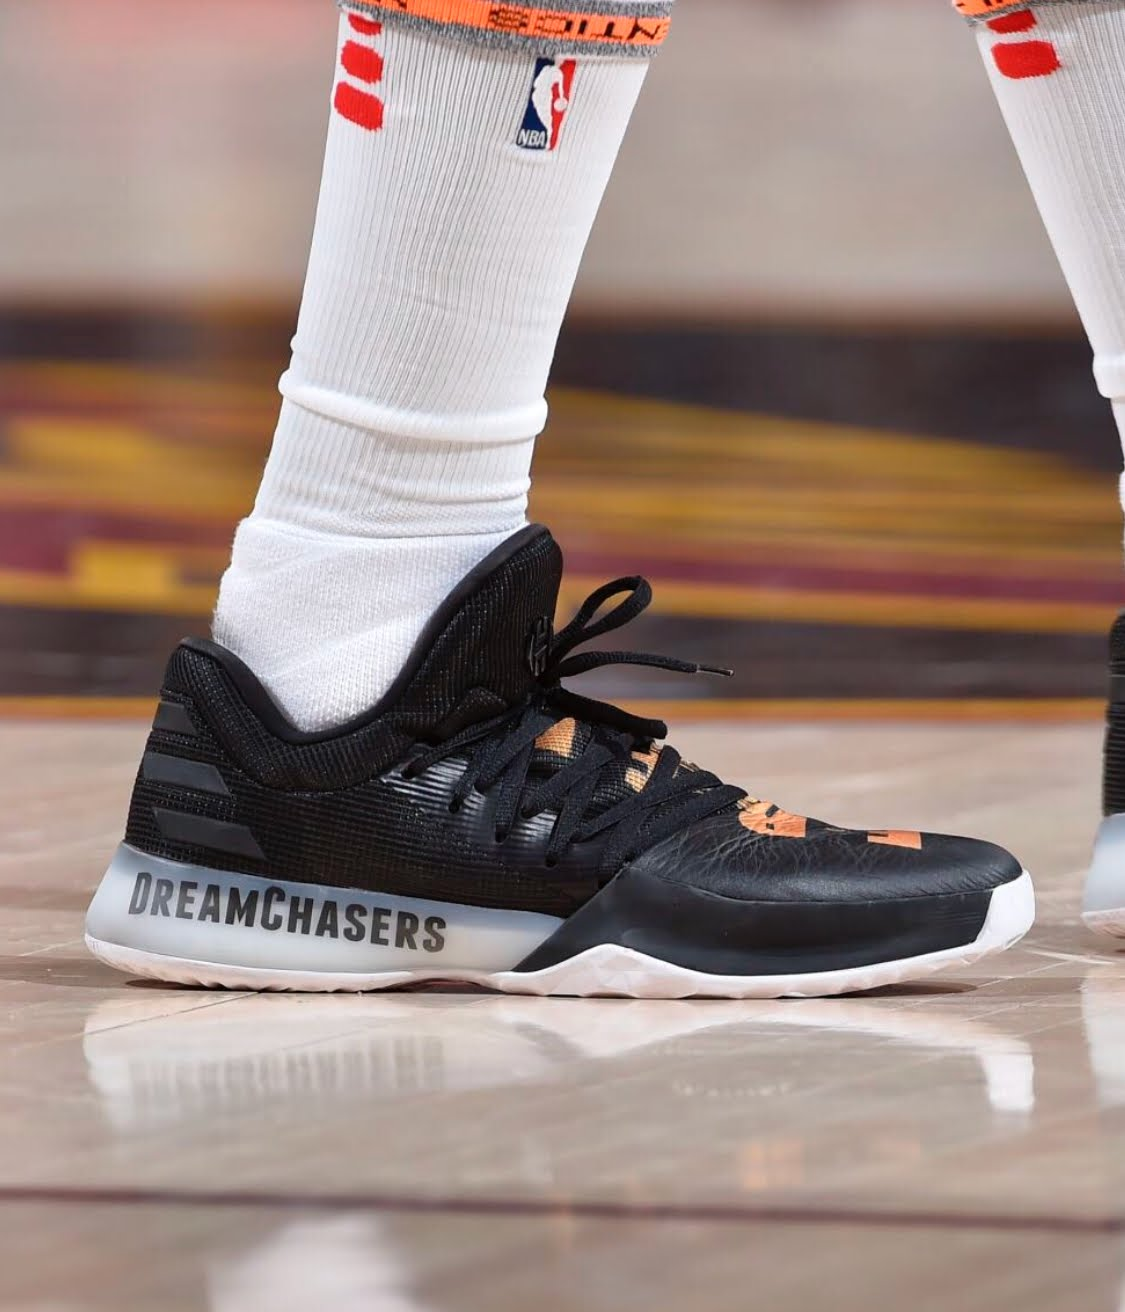 James Harden Free Meek Mill Shoes - Empire BBK